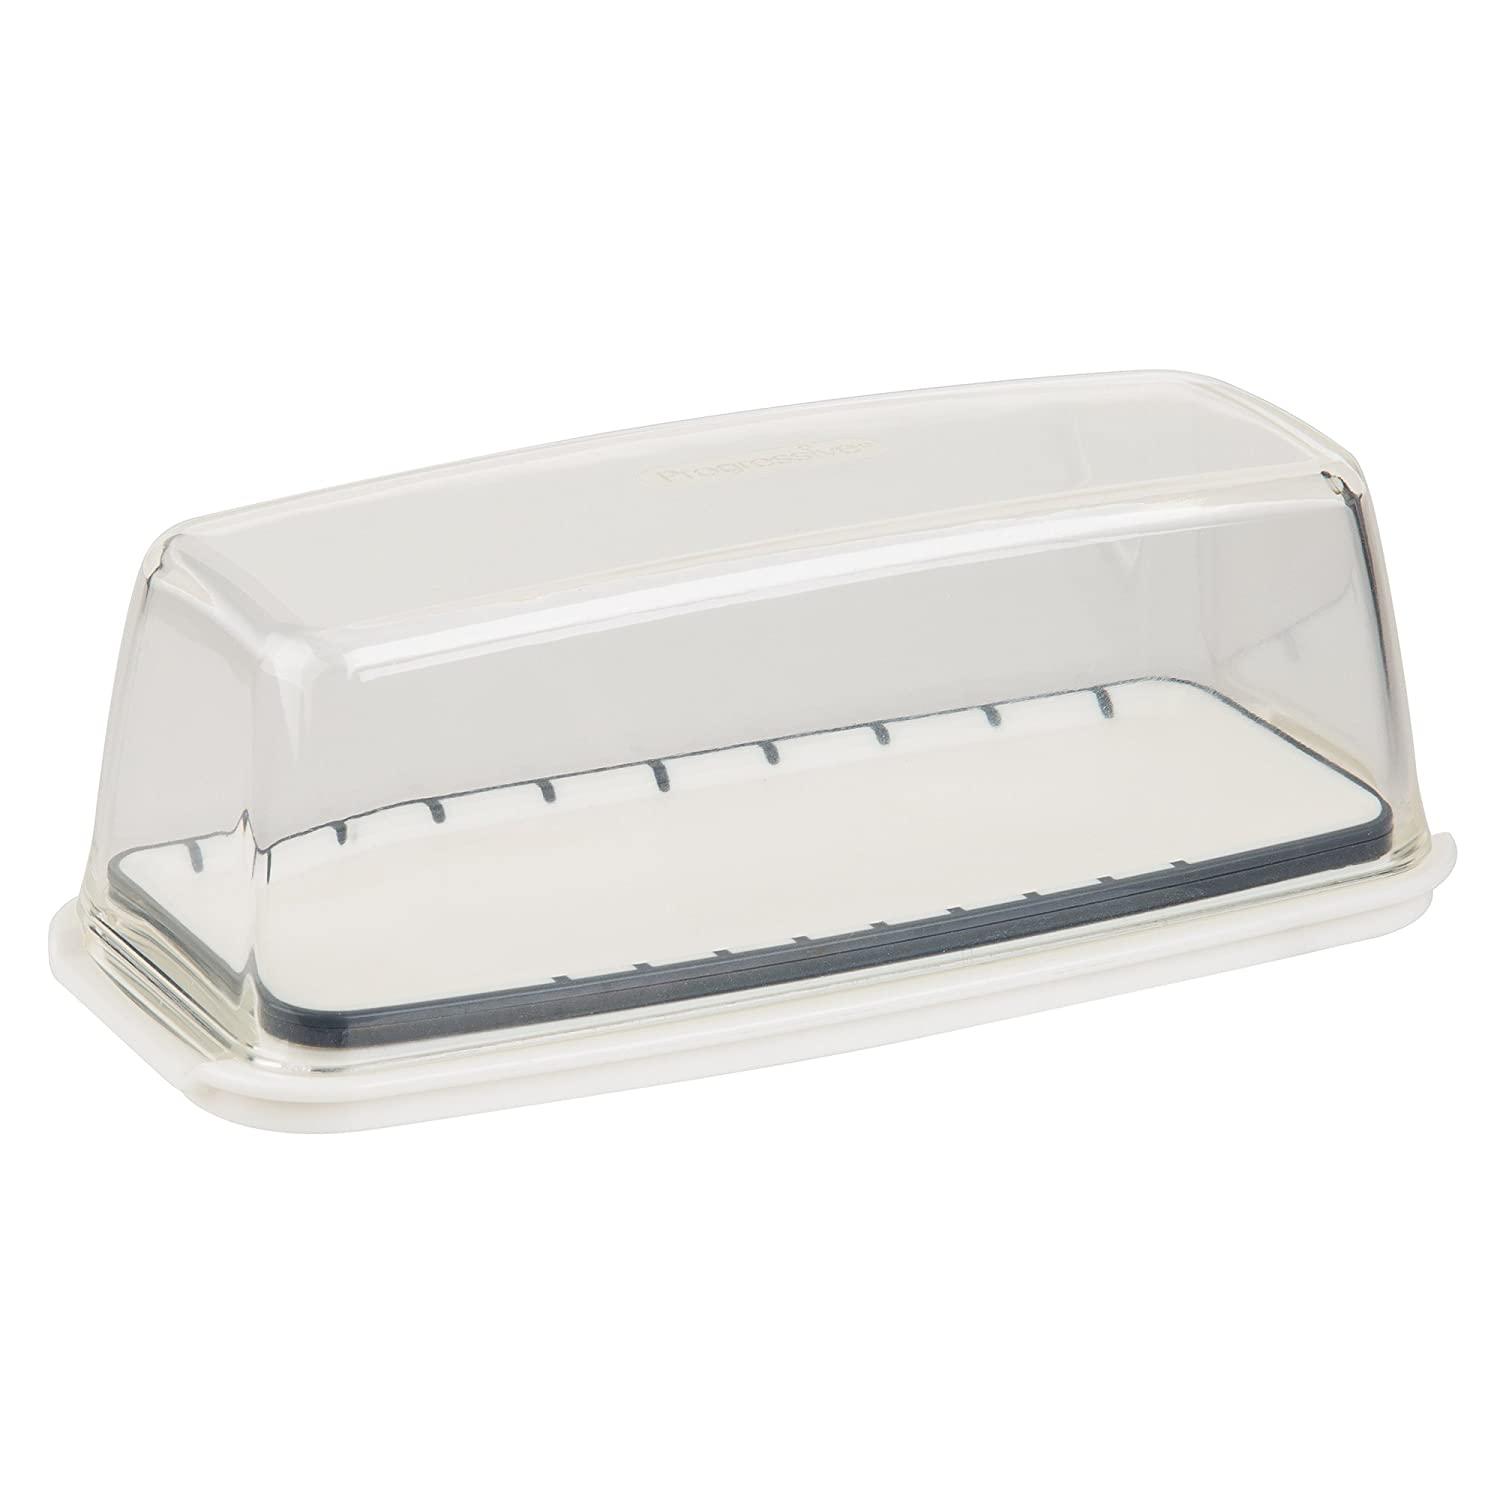 Prepworks by Progressive GBD-2 Butterdish Silicone Seal, Air Tight Butter Dish